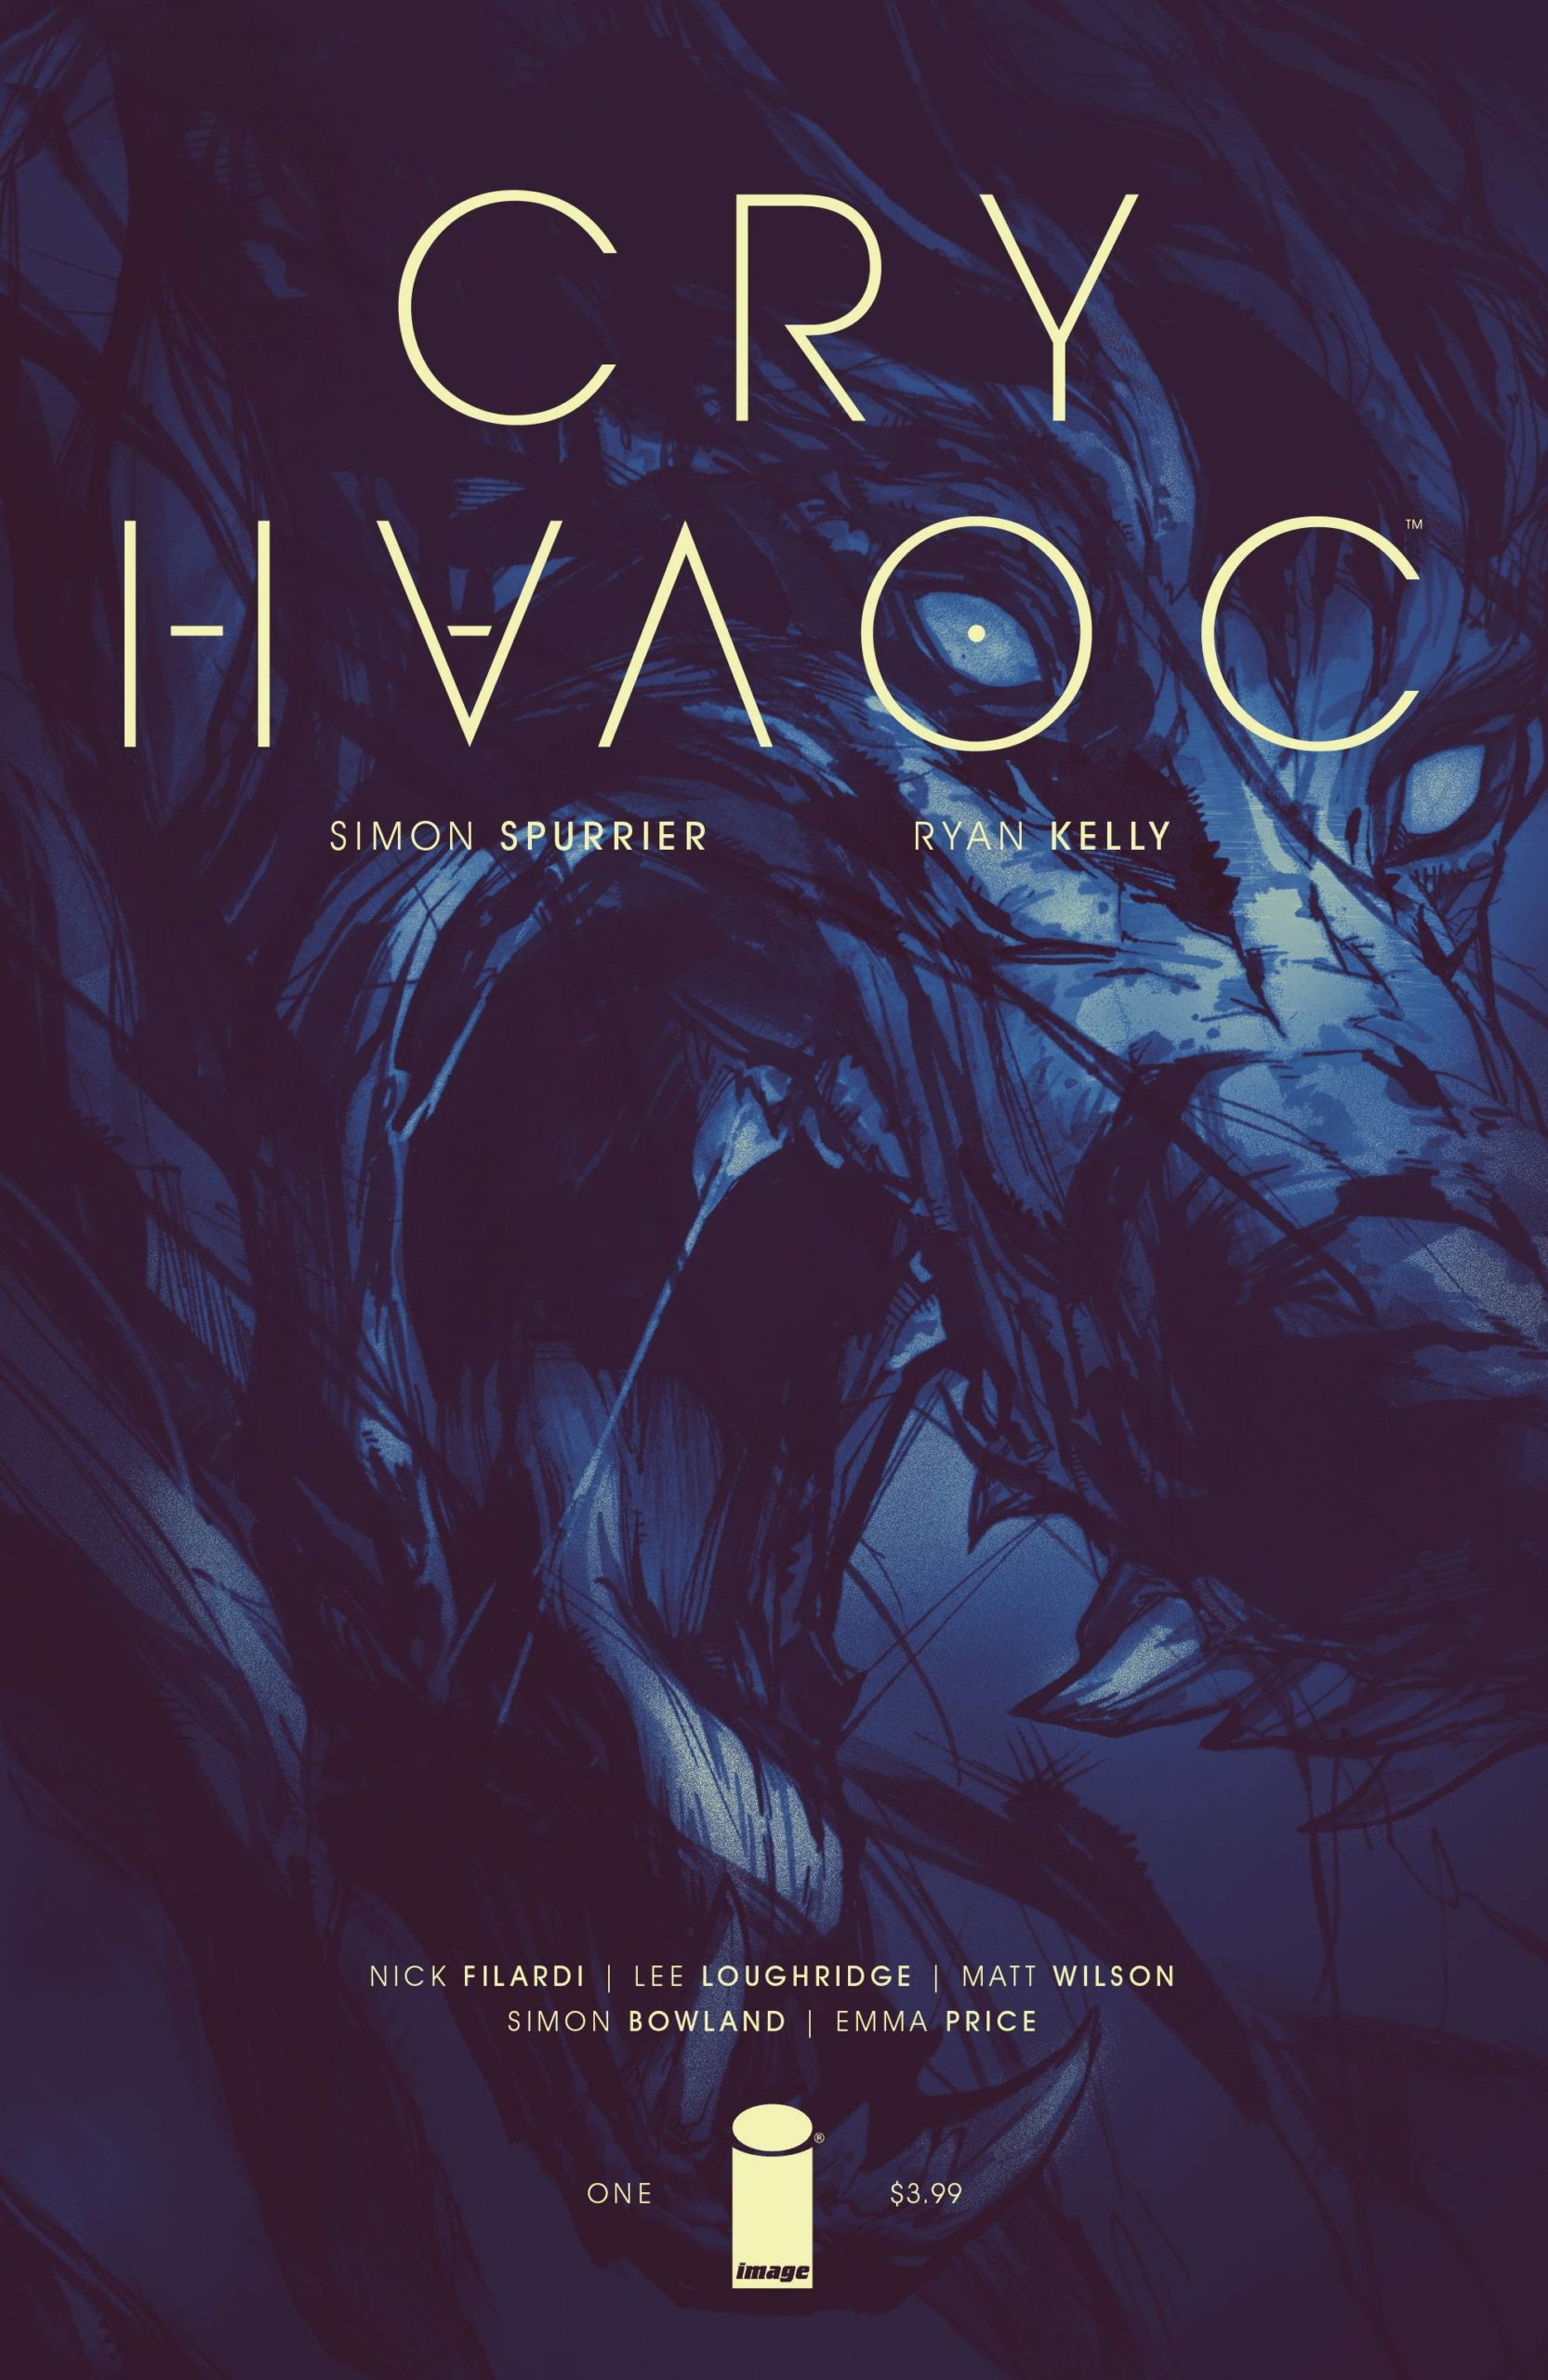 CRY HAVOC (MS 6)